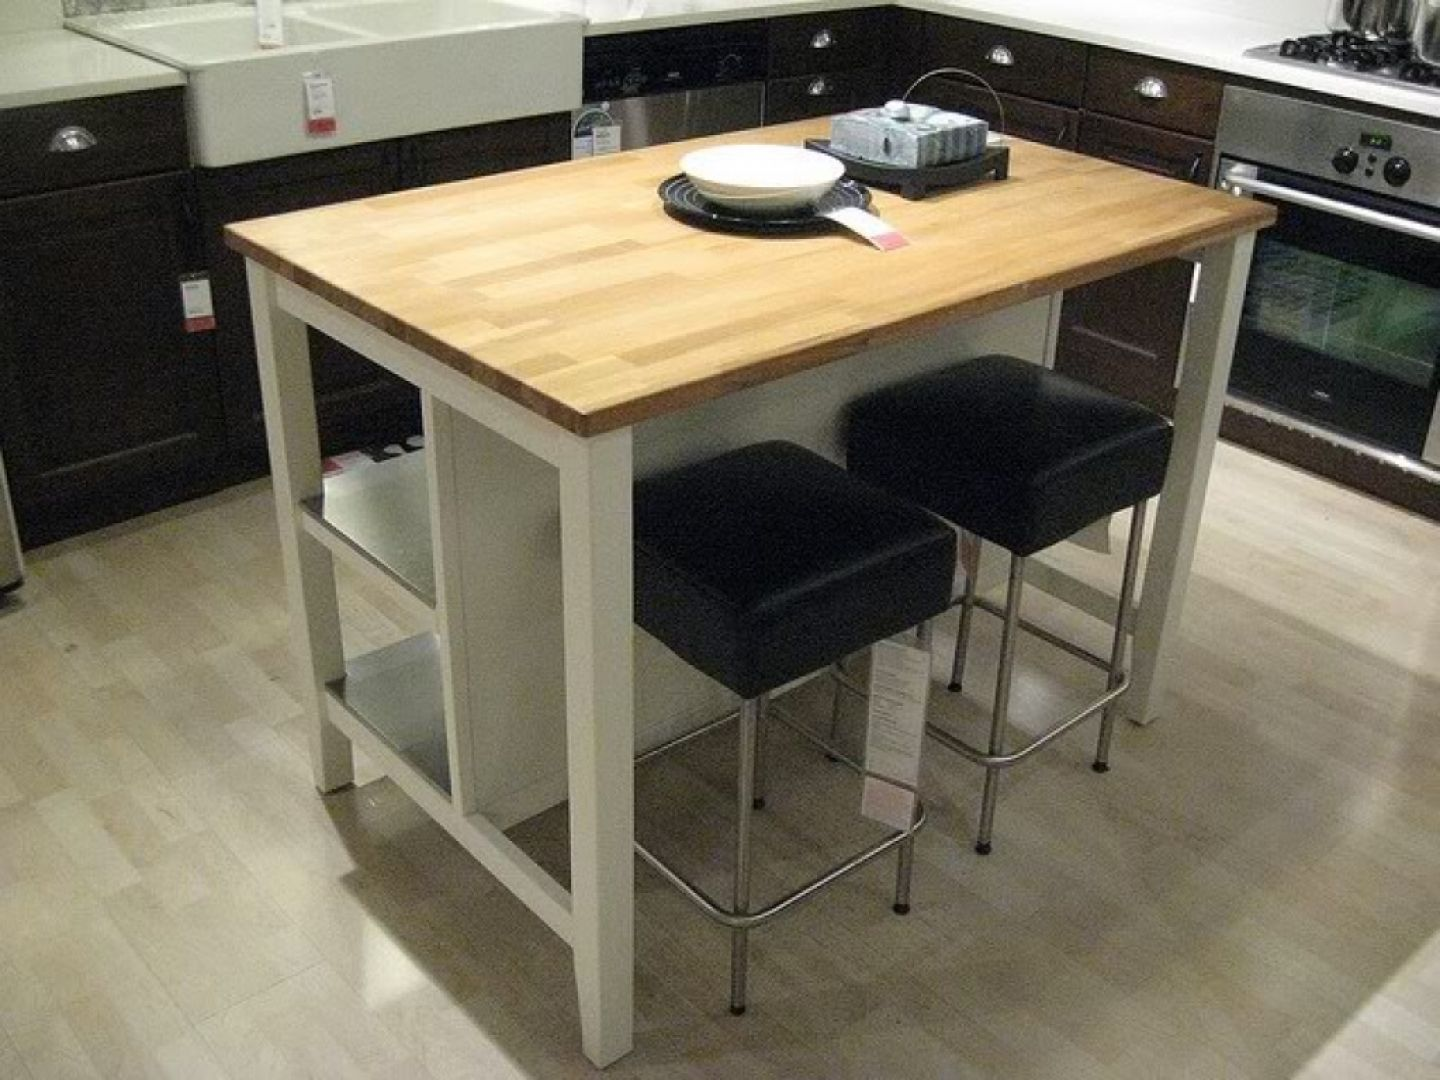 kitchen island table ideas unique decor ikea design decorating 719672